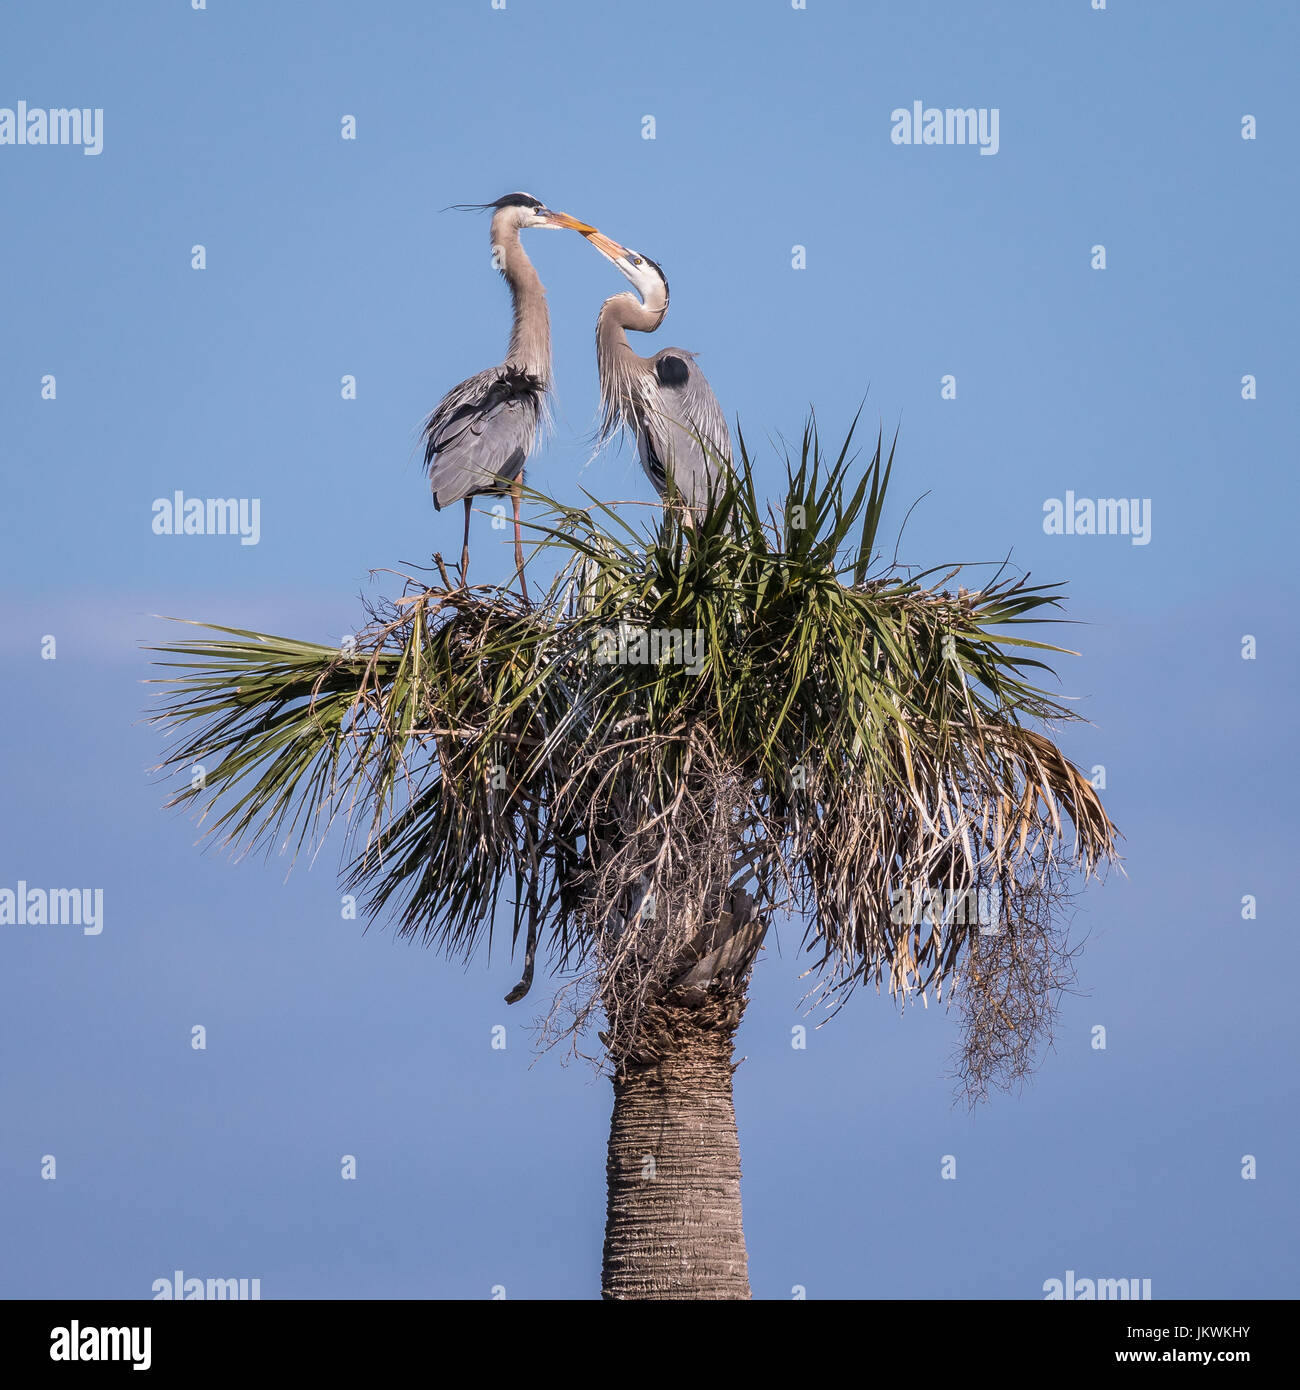 These great blue herons crossing bills were building a nest on top of a palm tree in the Viera Wetlands in Florida, - Stock Image